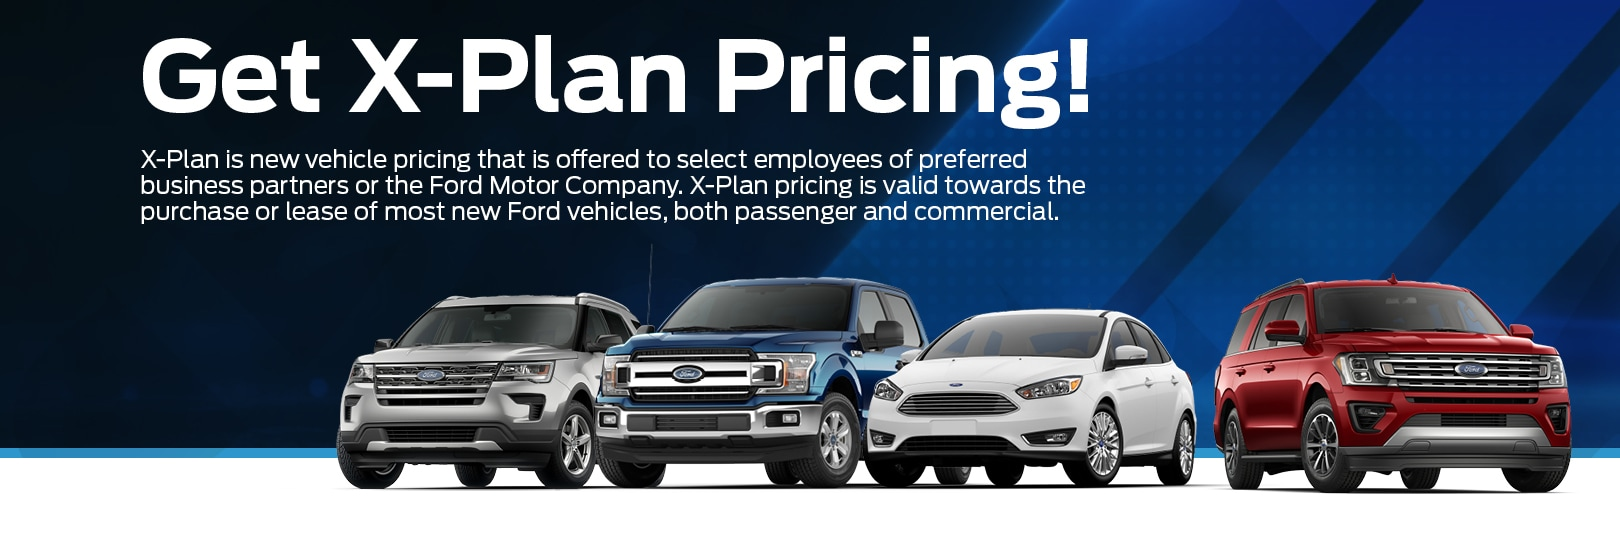 Bill colwell ford inc new ford dealership in hudson ia for Ford motor company employee discount